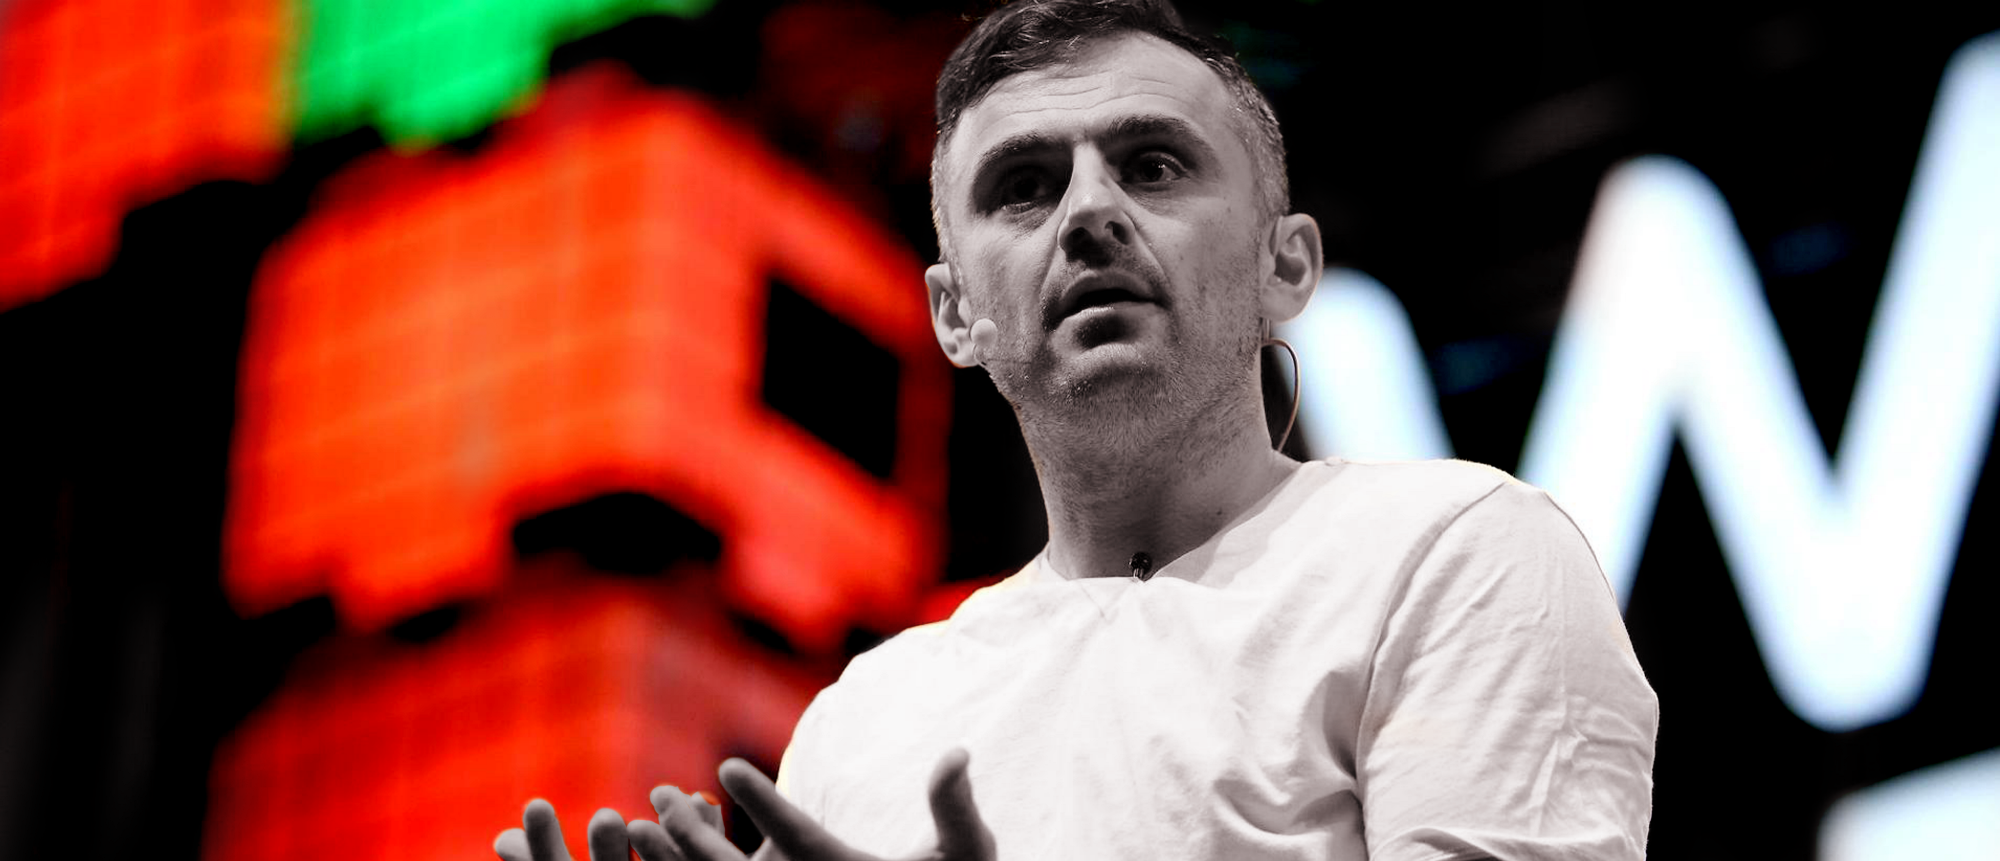 What does gary vaynerchuk do